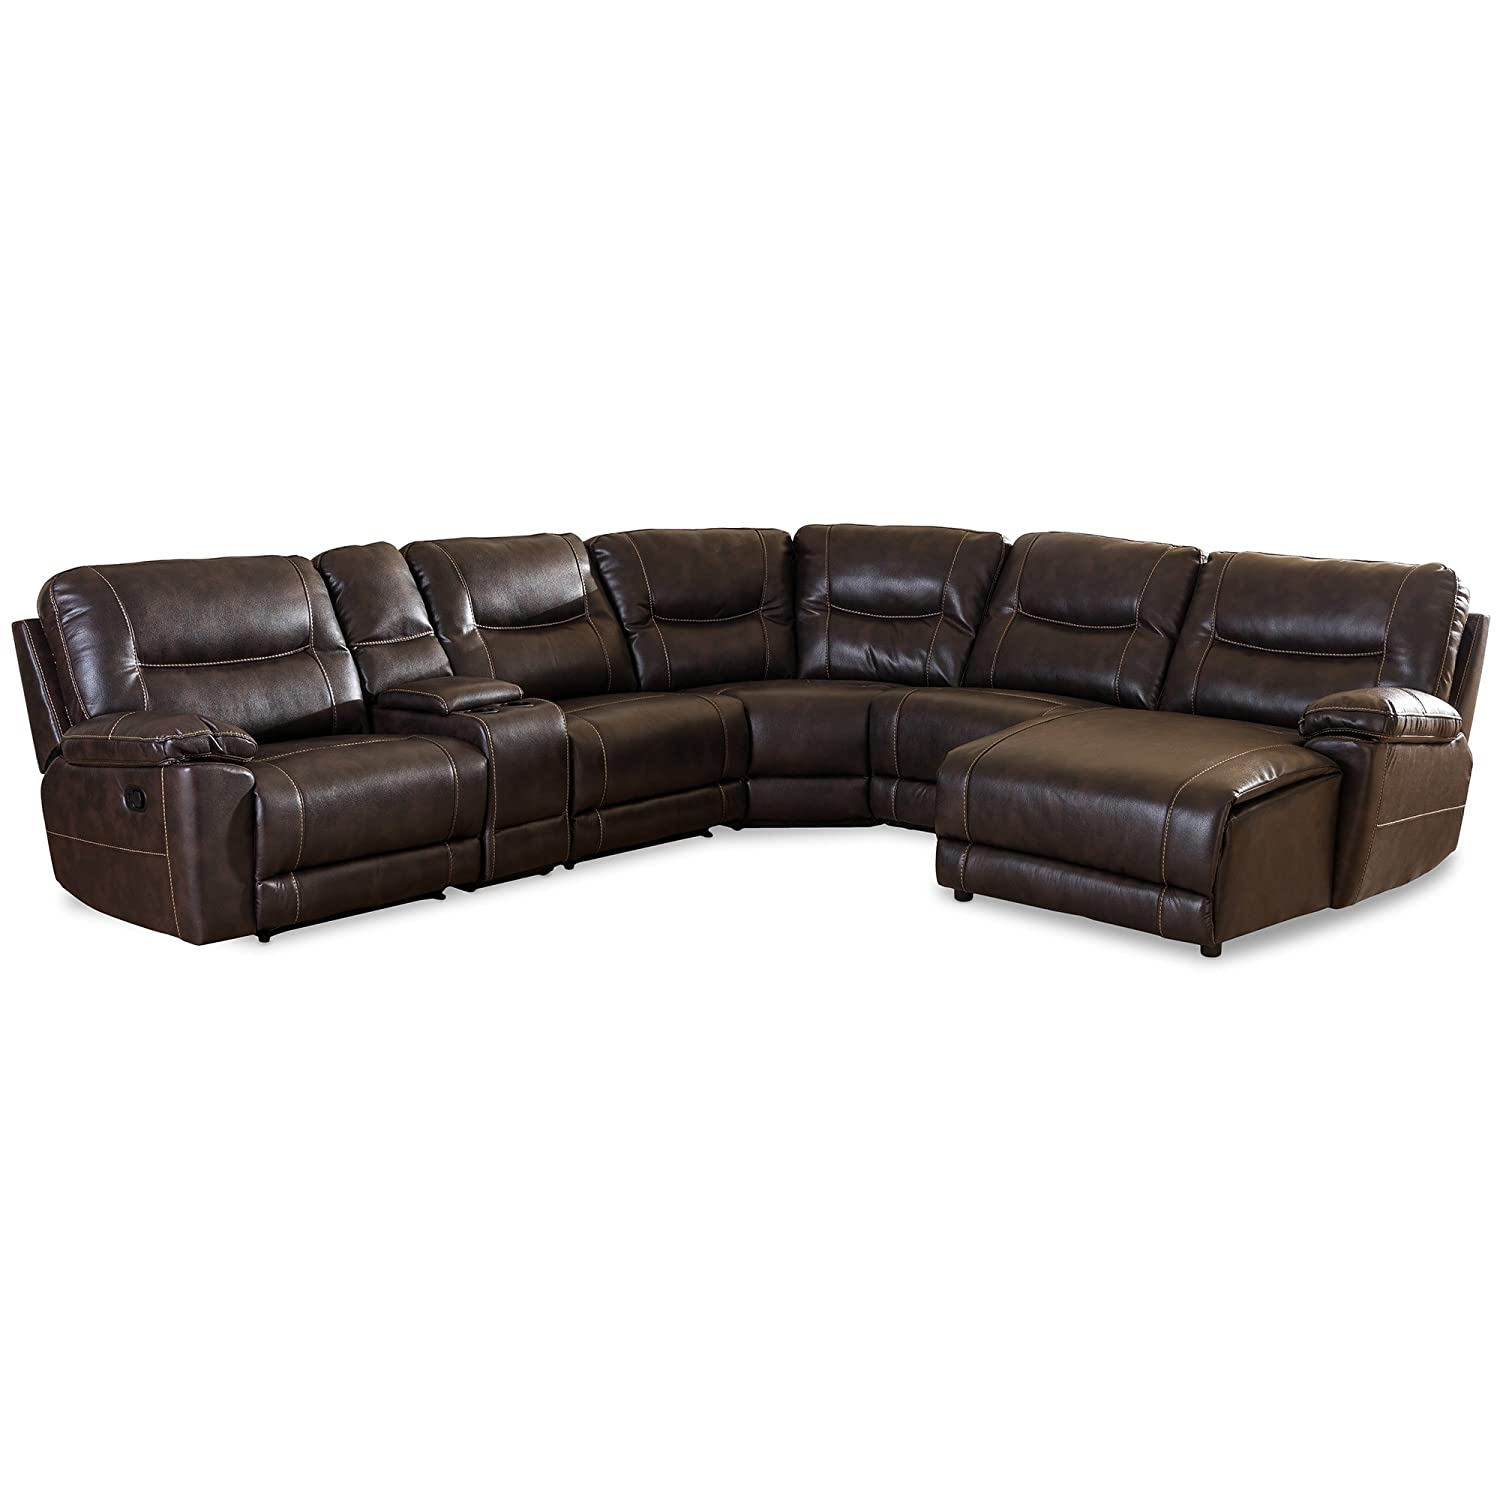 Tremendous Baxton Studio Gilles Modern Contemporary Bonded Leather 6 Piece Sectional With Recliners Corner Lounge Suite Brown Lamtechconsult Wood Chair Design Ideas Lamtechconsultcom